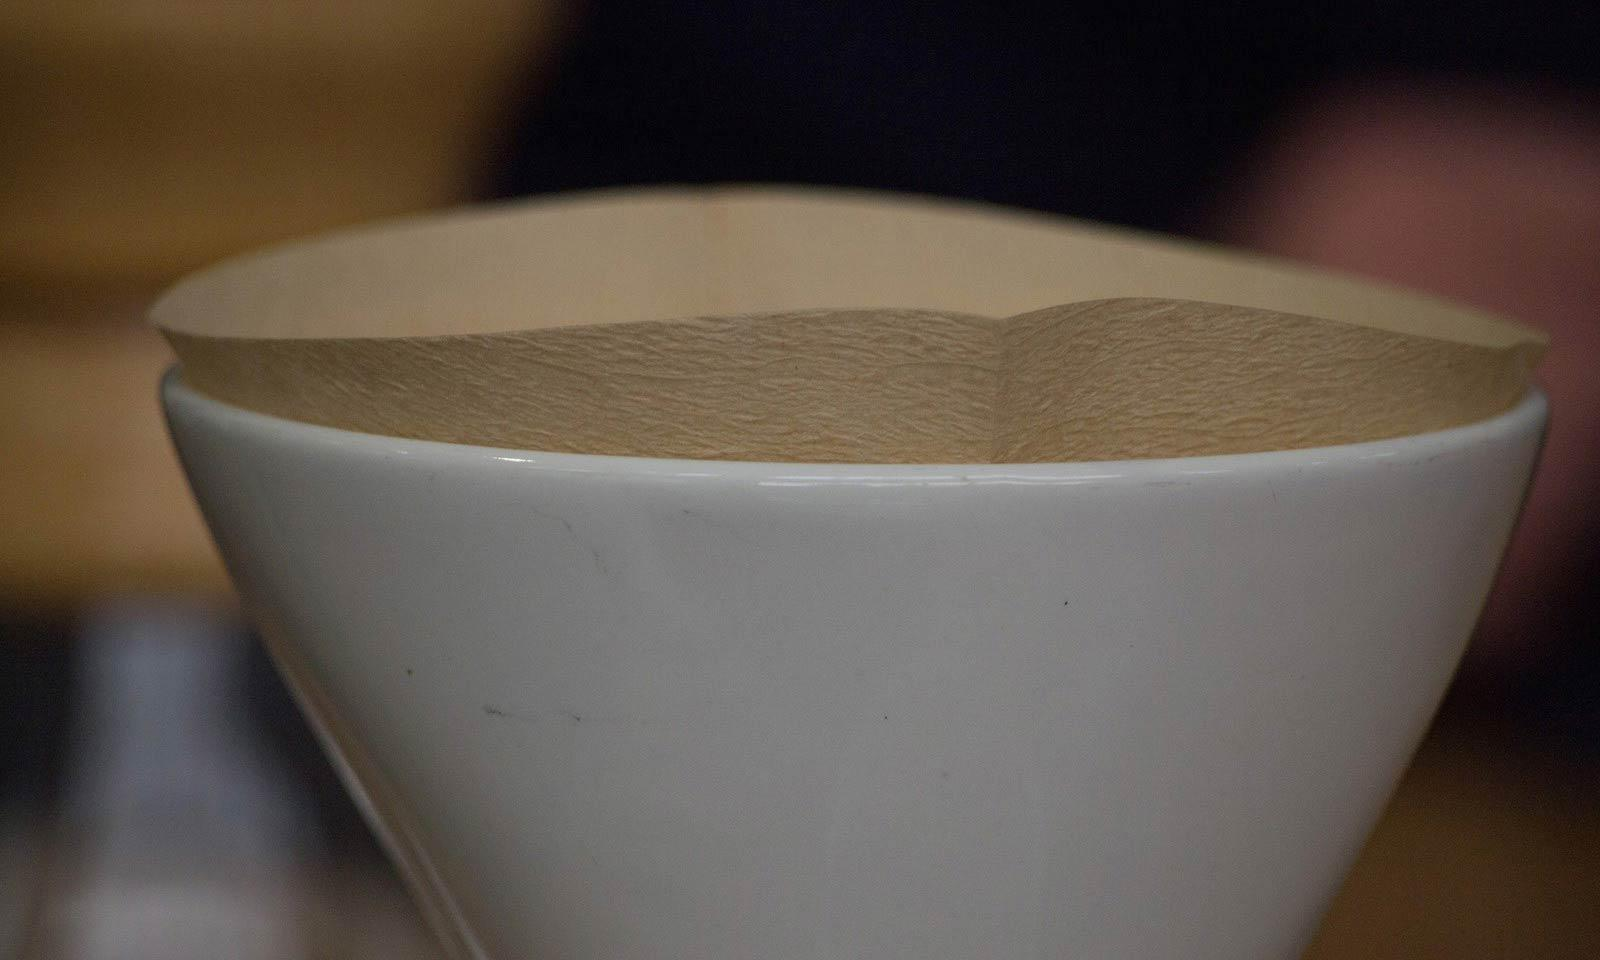 a filter in a coffee cup